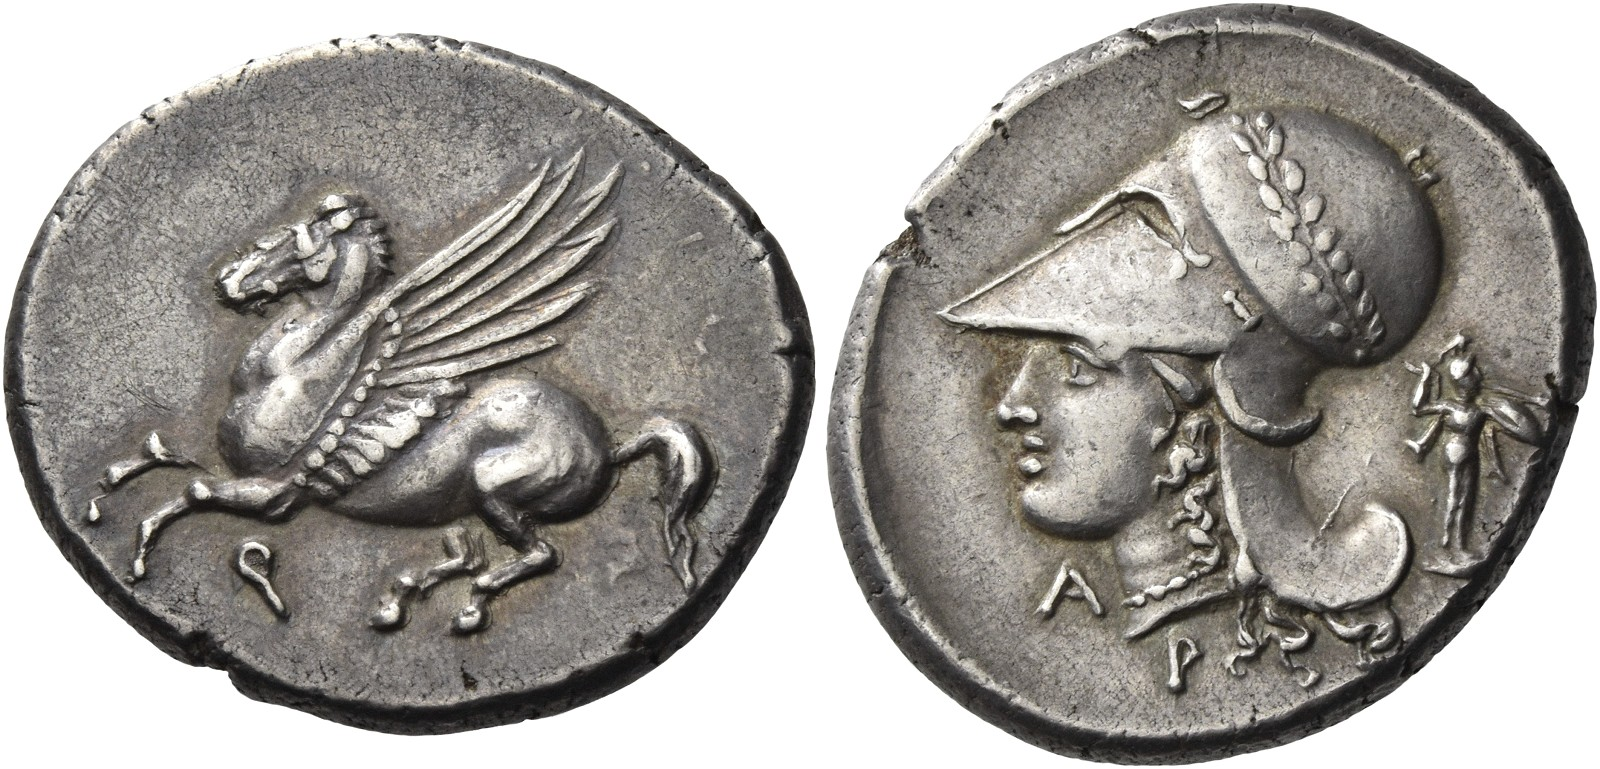 CoinArchives.com Search Results : pamphylia